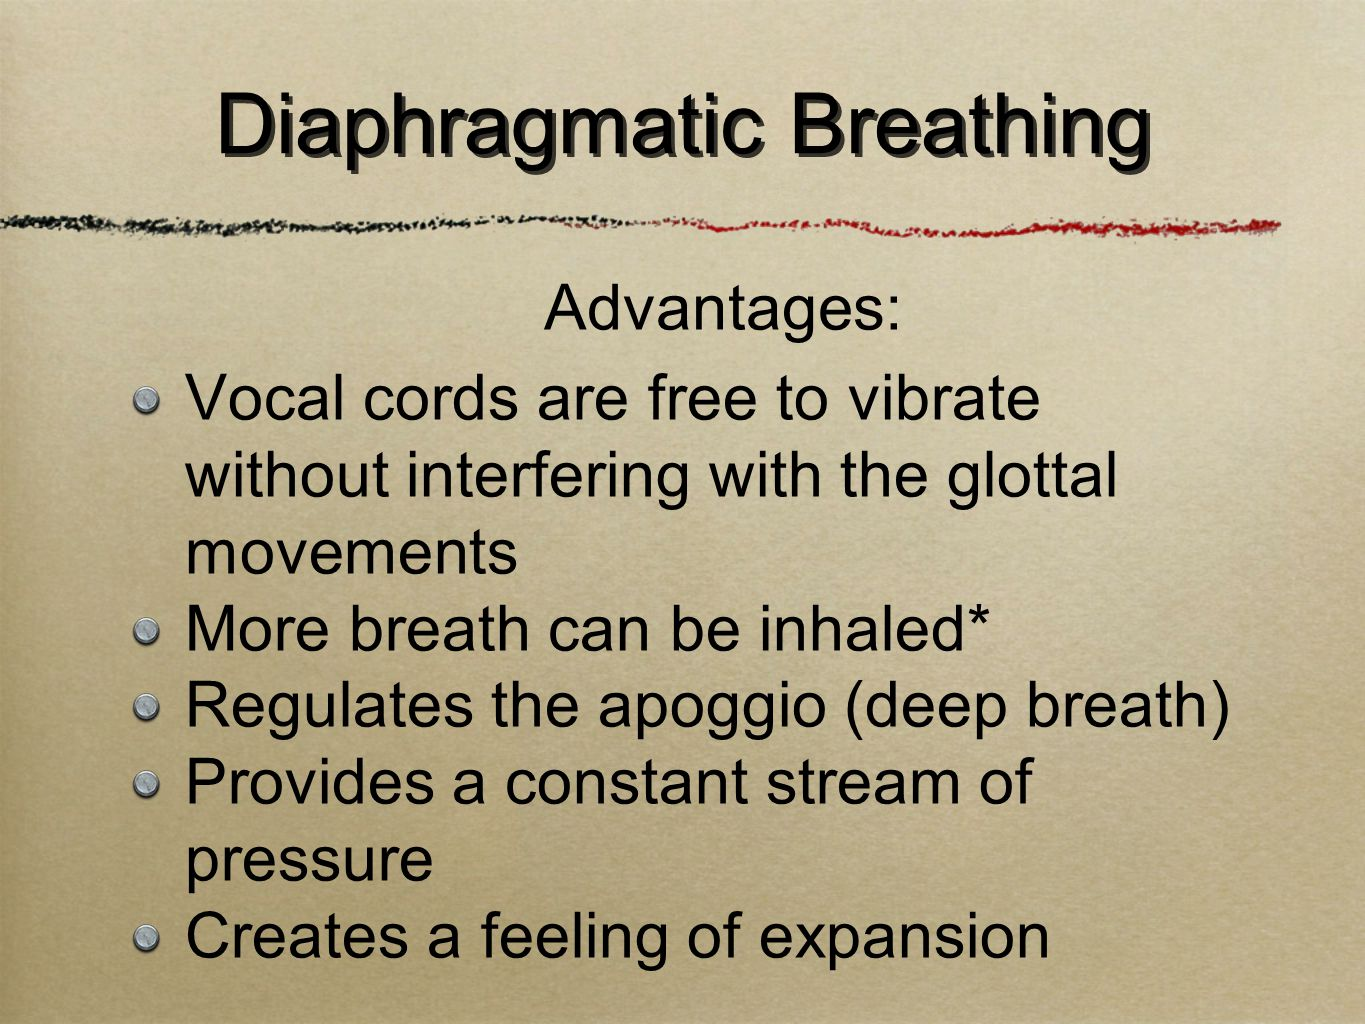 Vocal cords are free to vibrate without interfering with the glottal movements More breath can be inhaled* Regulates the apoggio (deep breath) Provides a constant stream of pressure Creates a feeling of expansion Diaphragmatic Breathing Advantages: